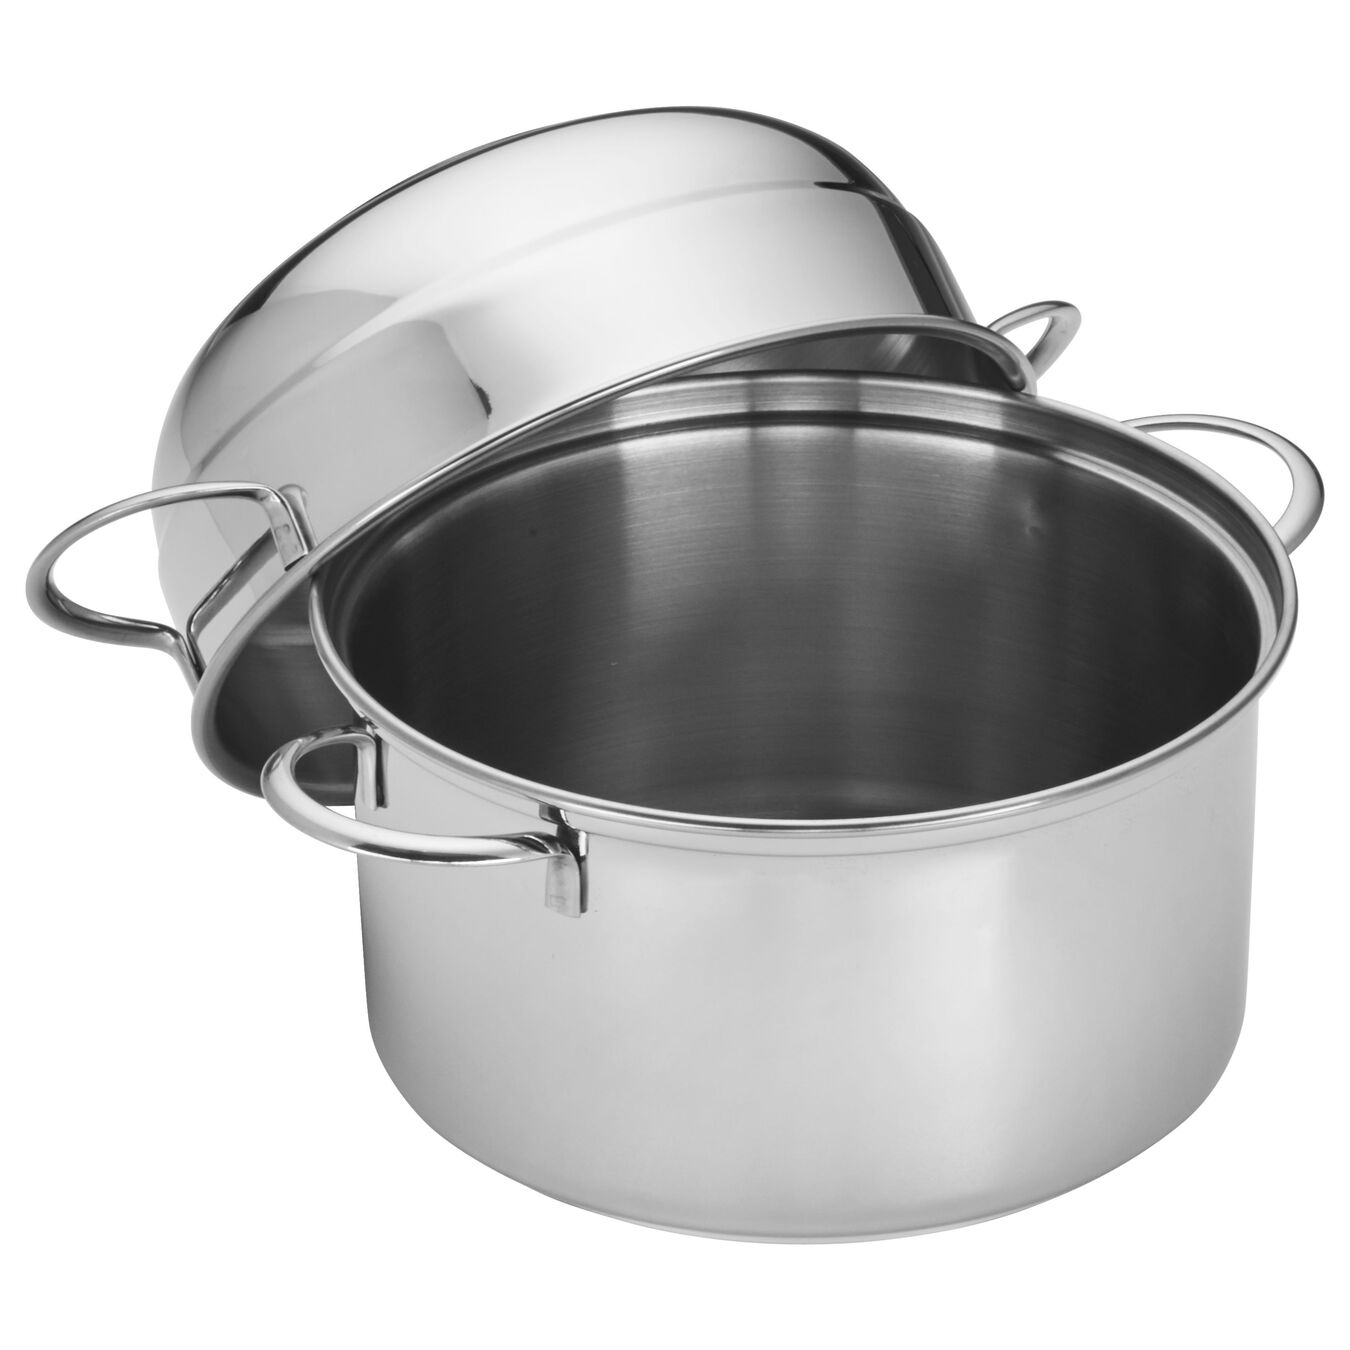 3.2-qt Stainless Steel Mussel Pot,,large 3